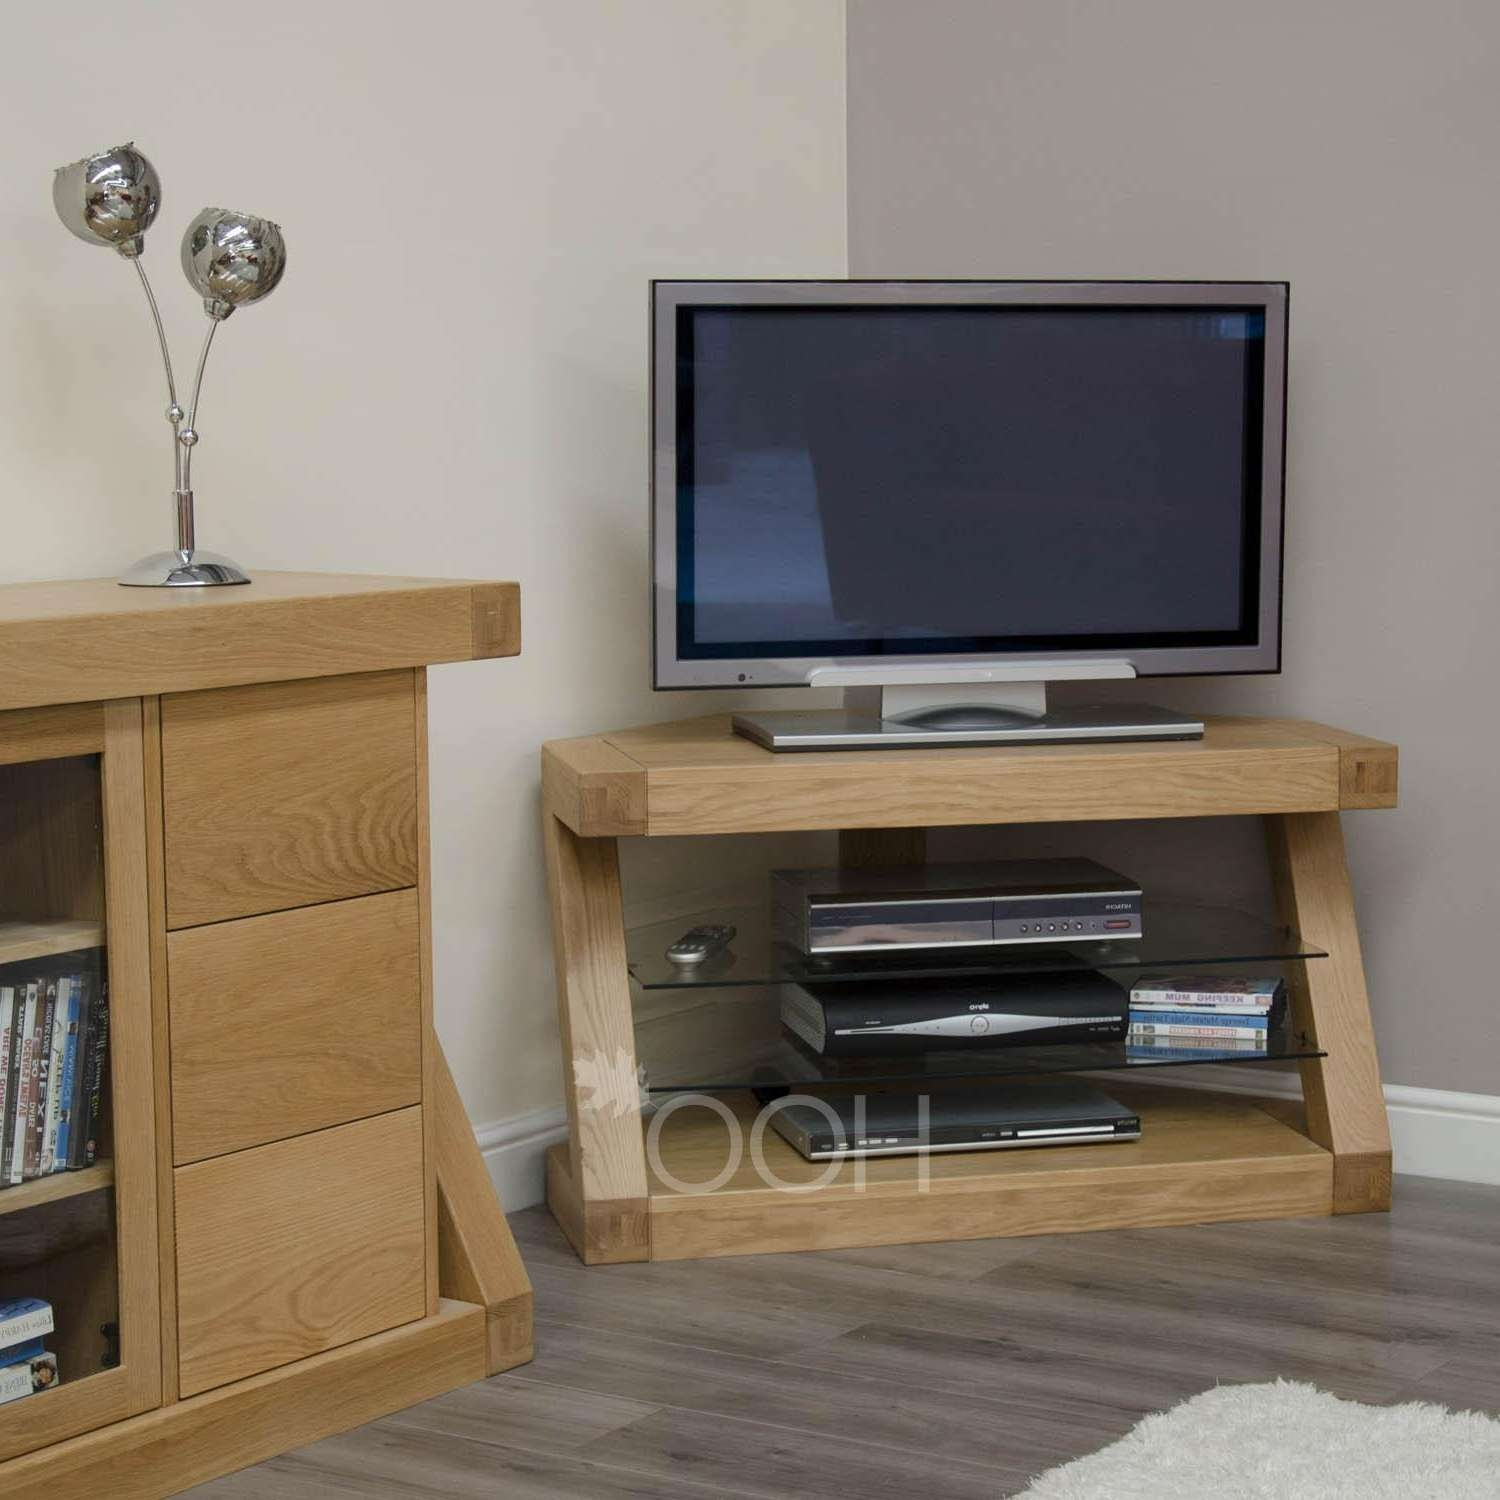 Z Oak Corner Tv Cabinet – Oak Furniturehouse Of Oak With Regard To Oak Corner Tv Stands (View 15 of 15)